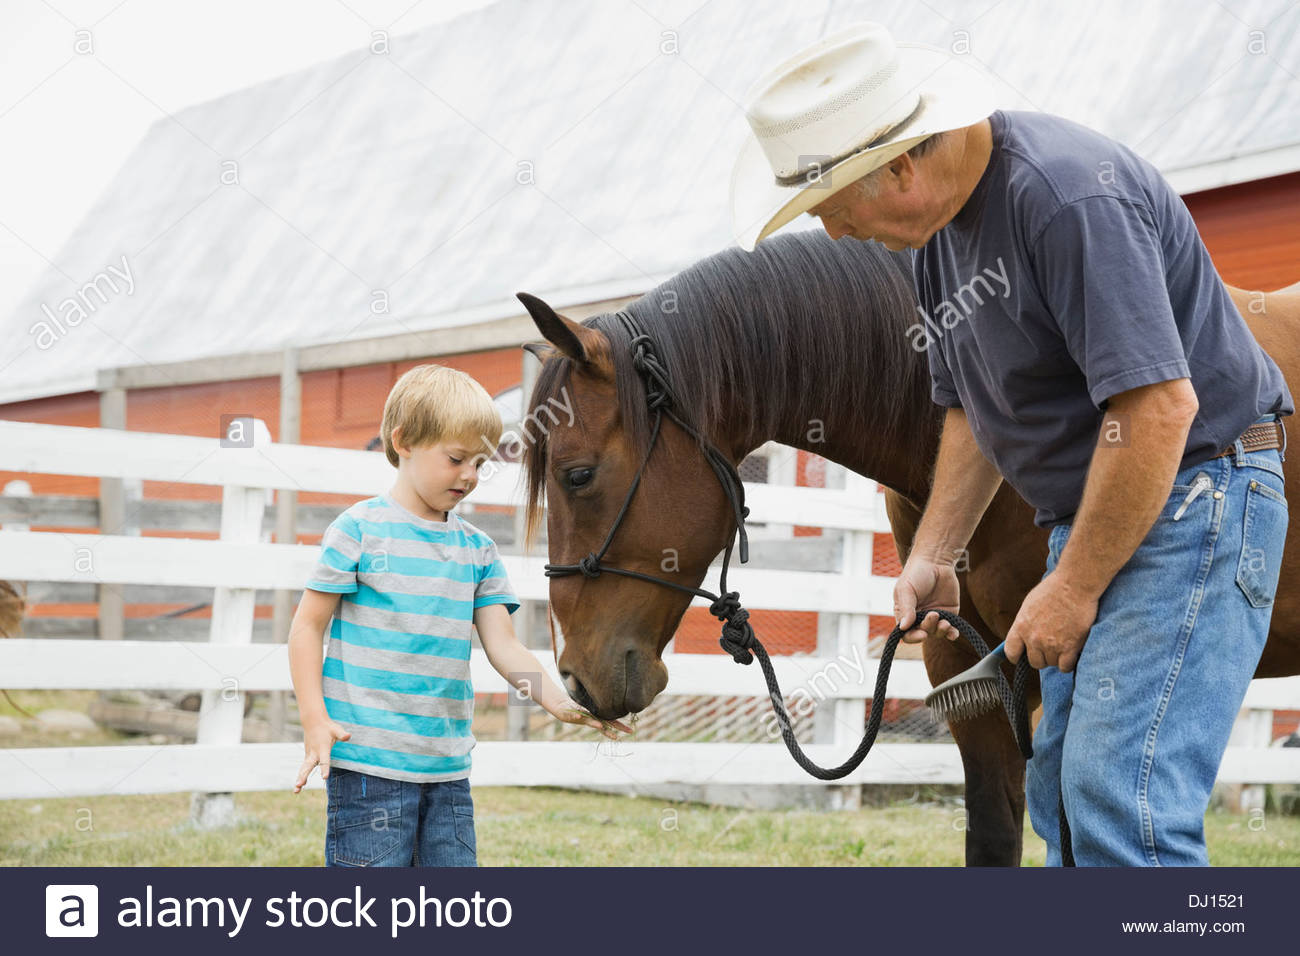 Grandfather with grandson feeding horse on farm - Stock Image